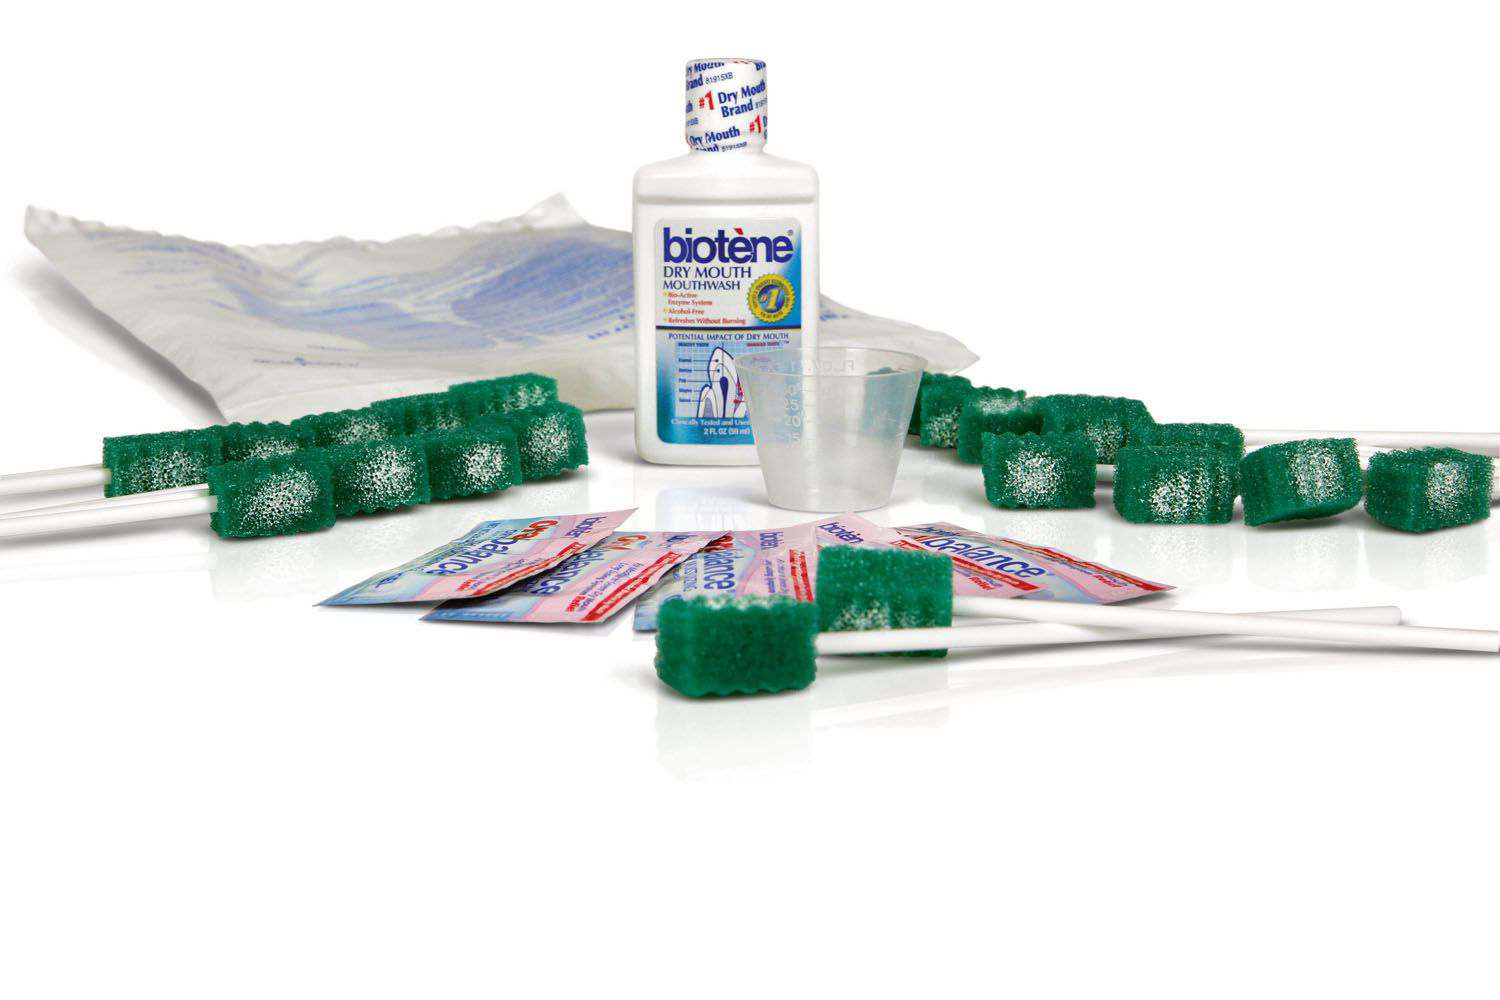 Medline Extended Oral Care Kit with Biotene - 20 Swabs, Mwash, Mois, Each - Model MDS096000